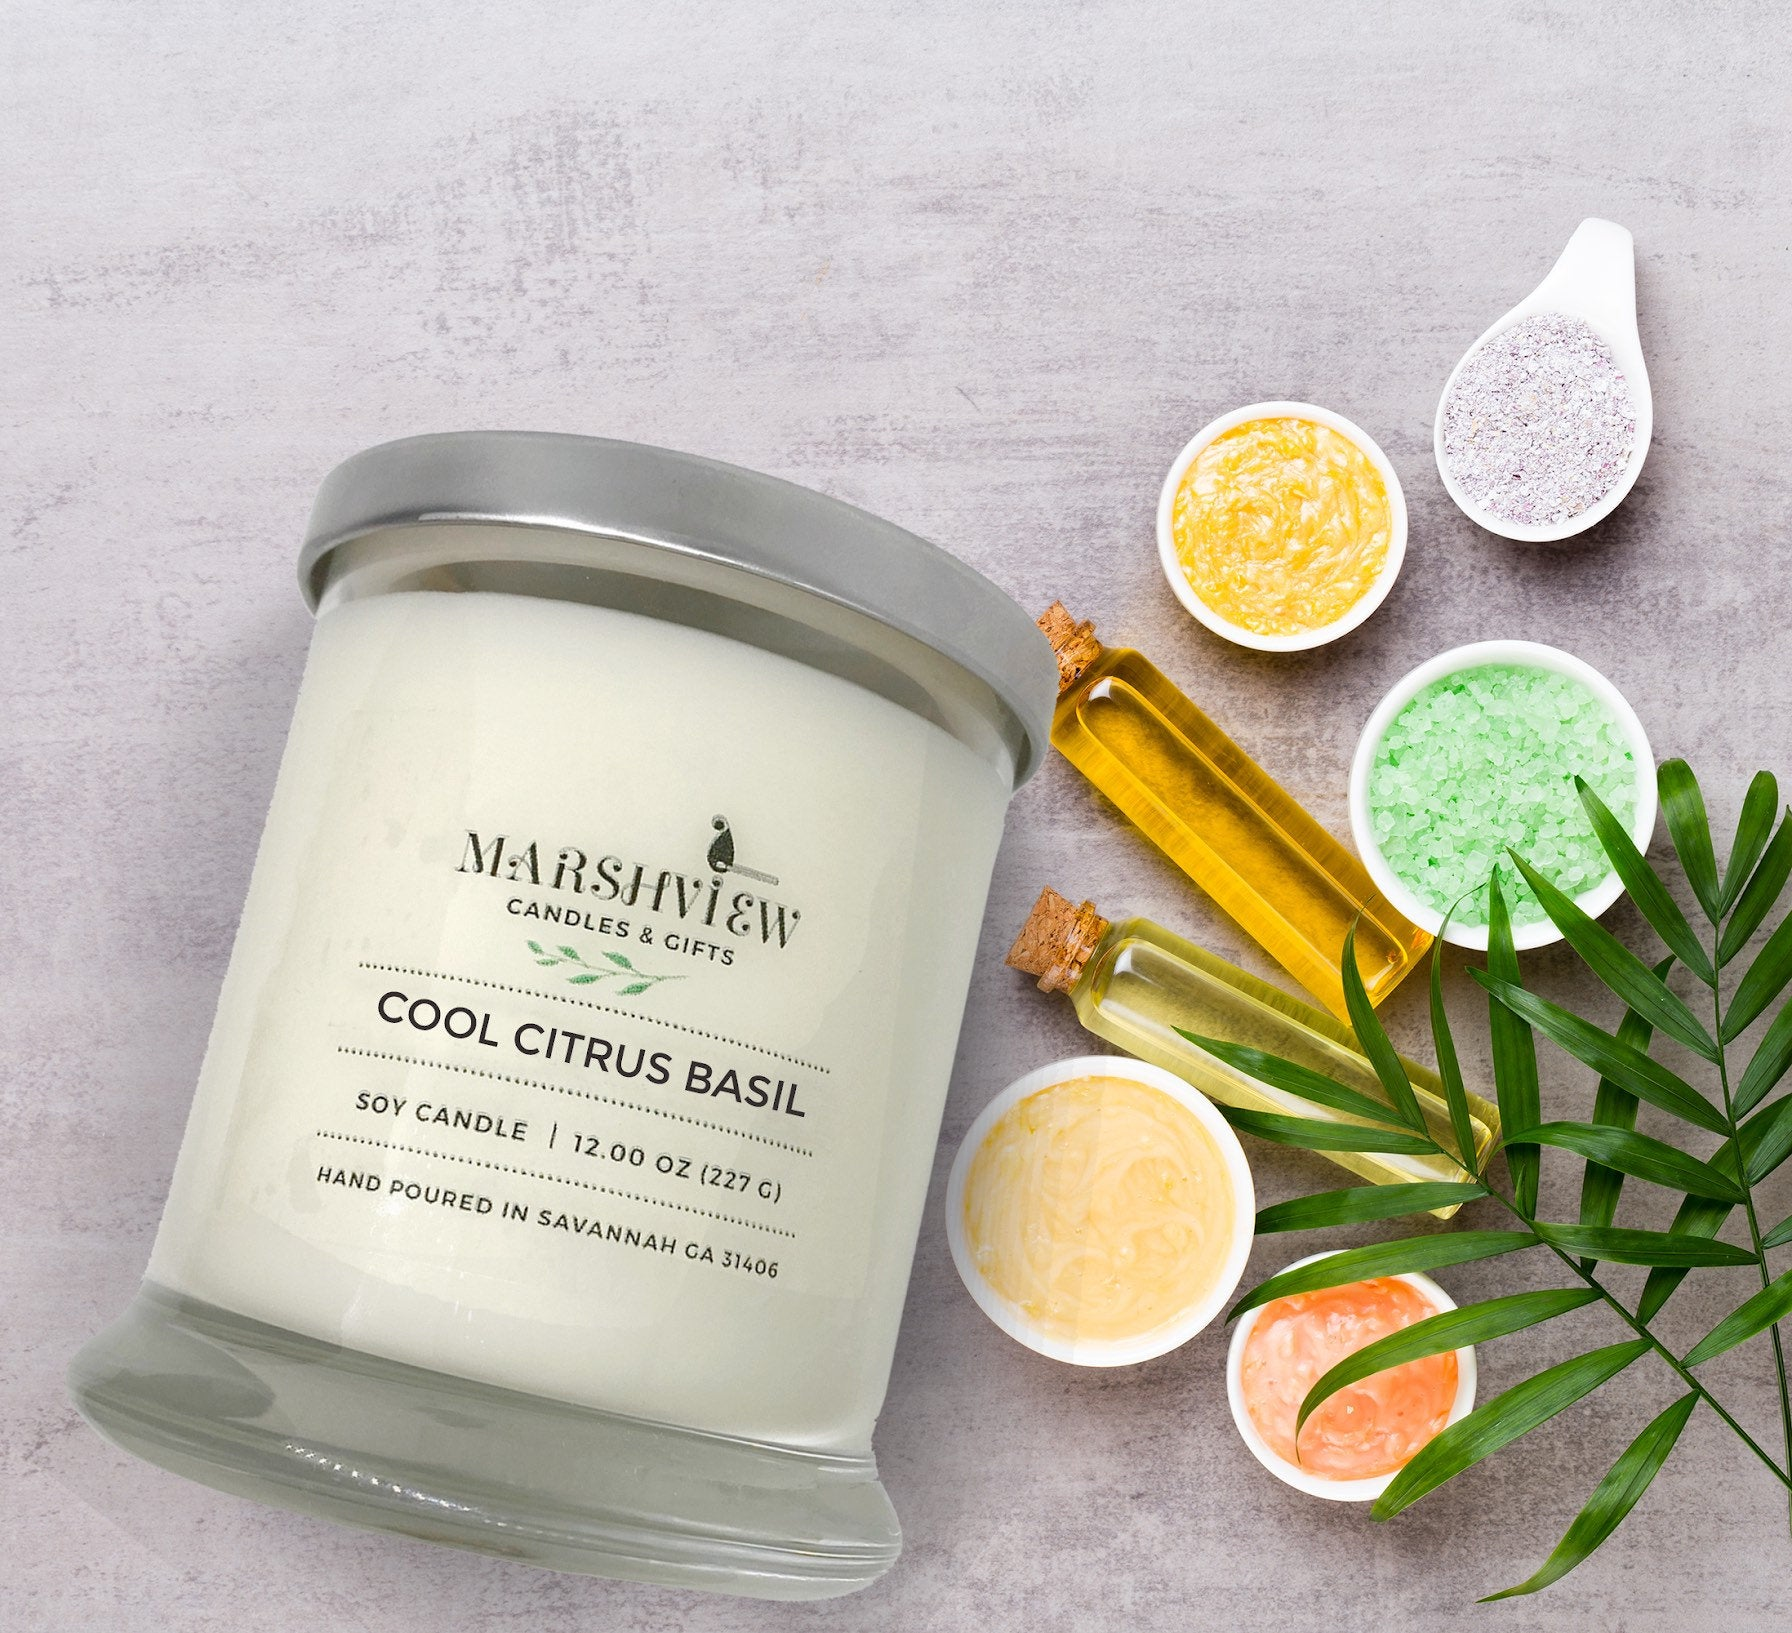 Cool Citrus Basil Scented candle/Soy Wax Candle/Wax Melts